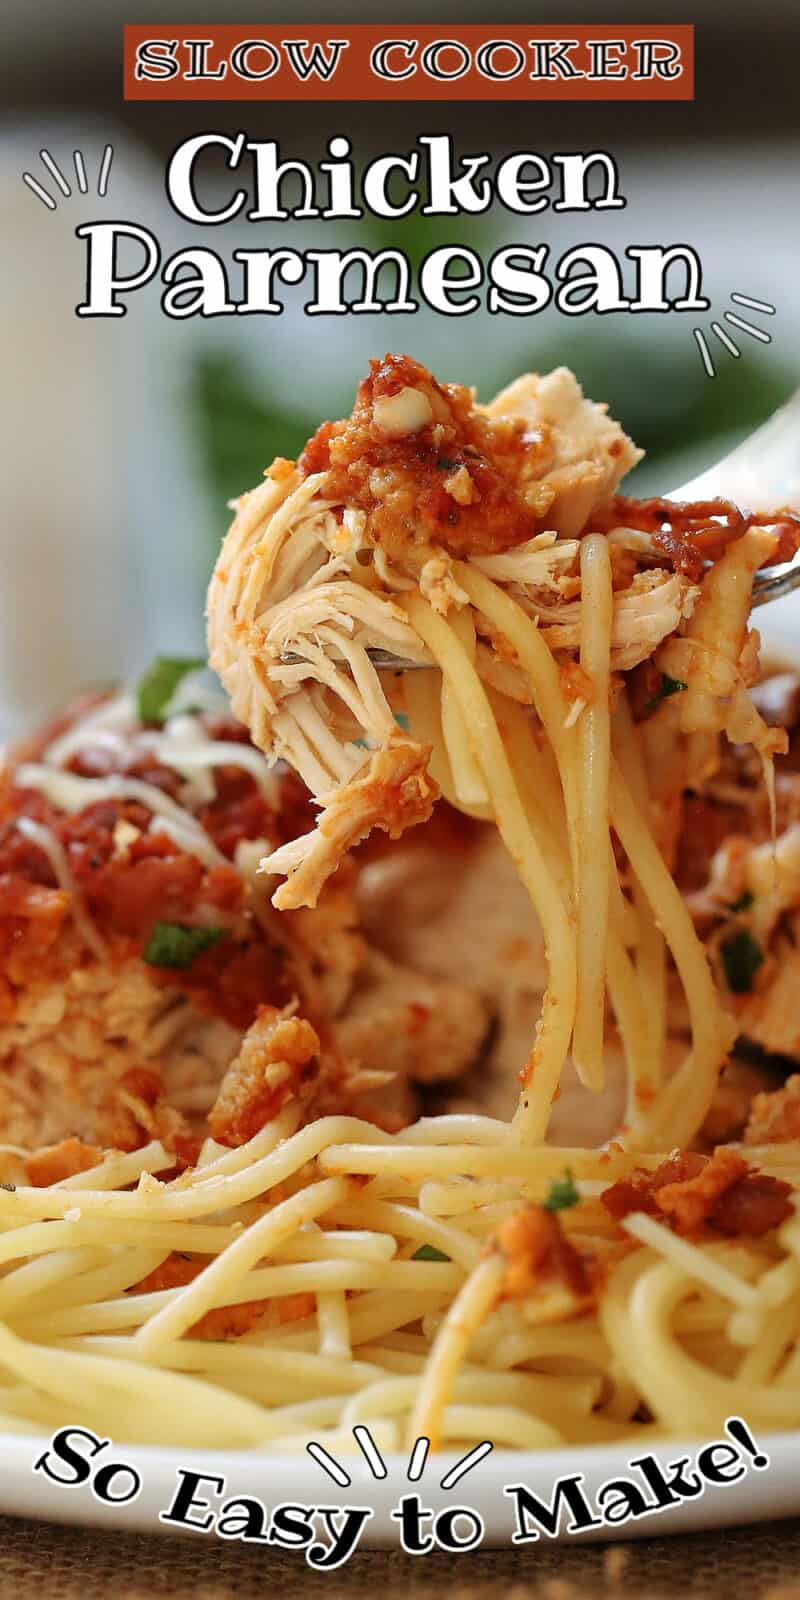 chicken parmesan and spaghetti being lifted by a fork on a plate with text